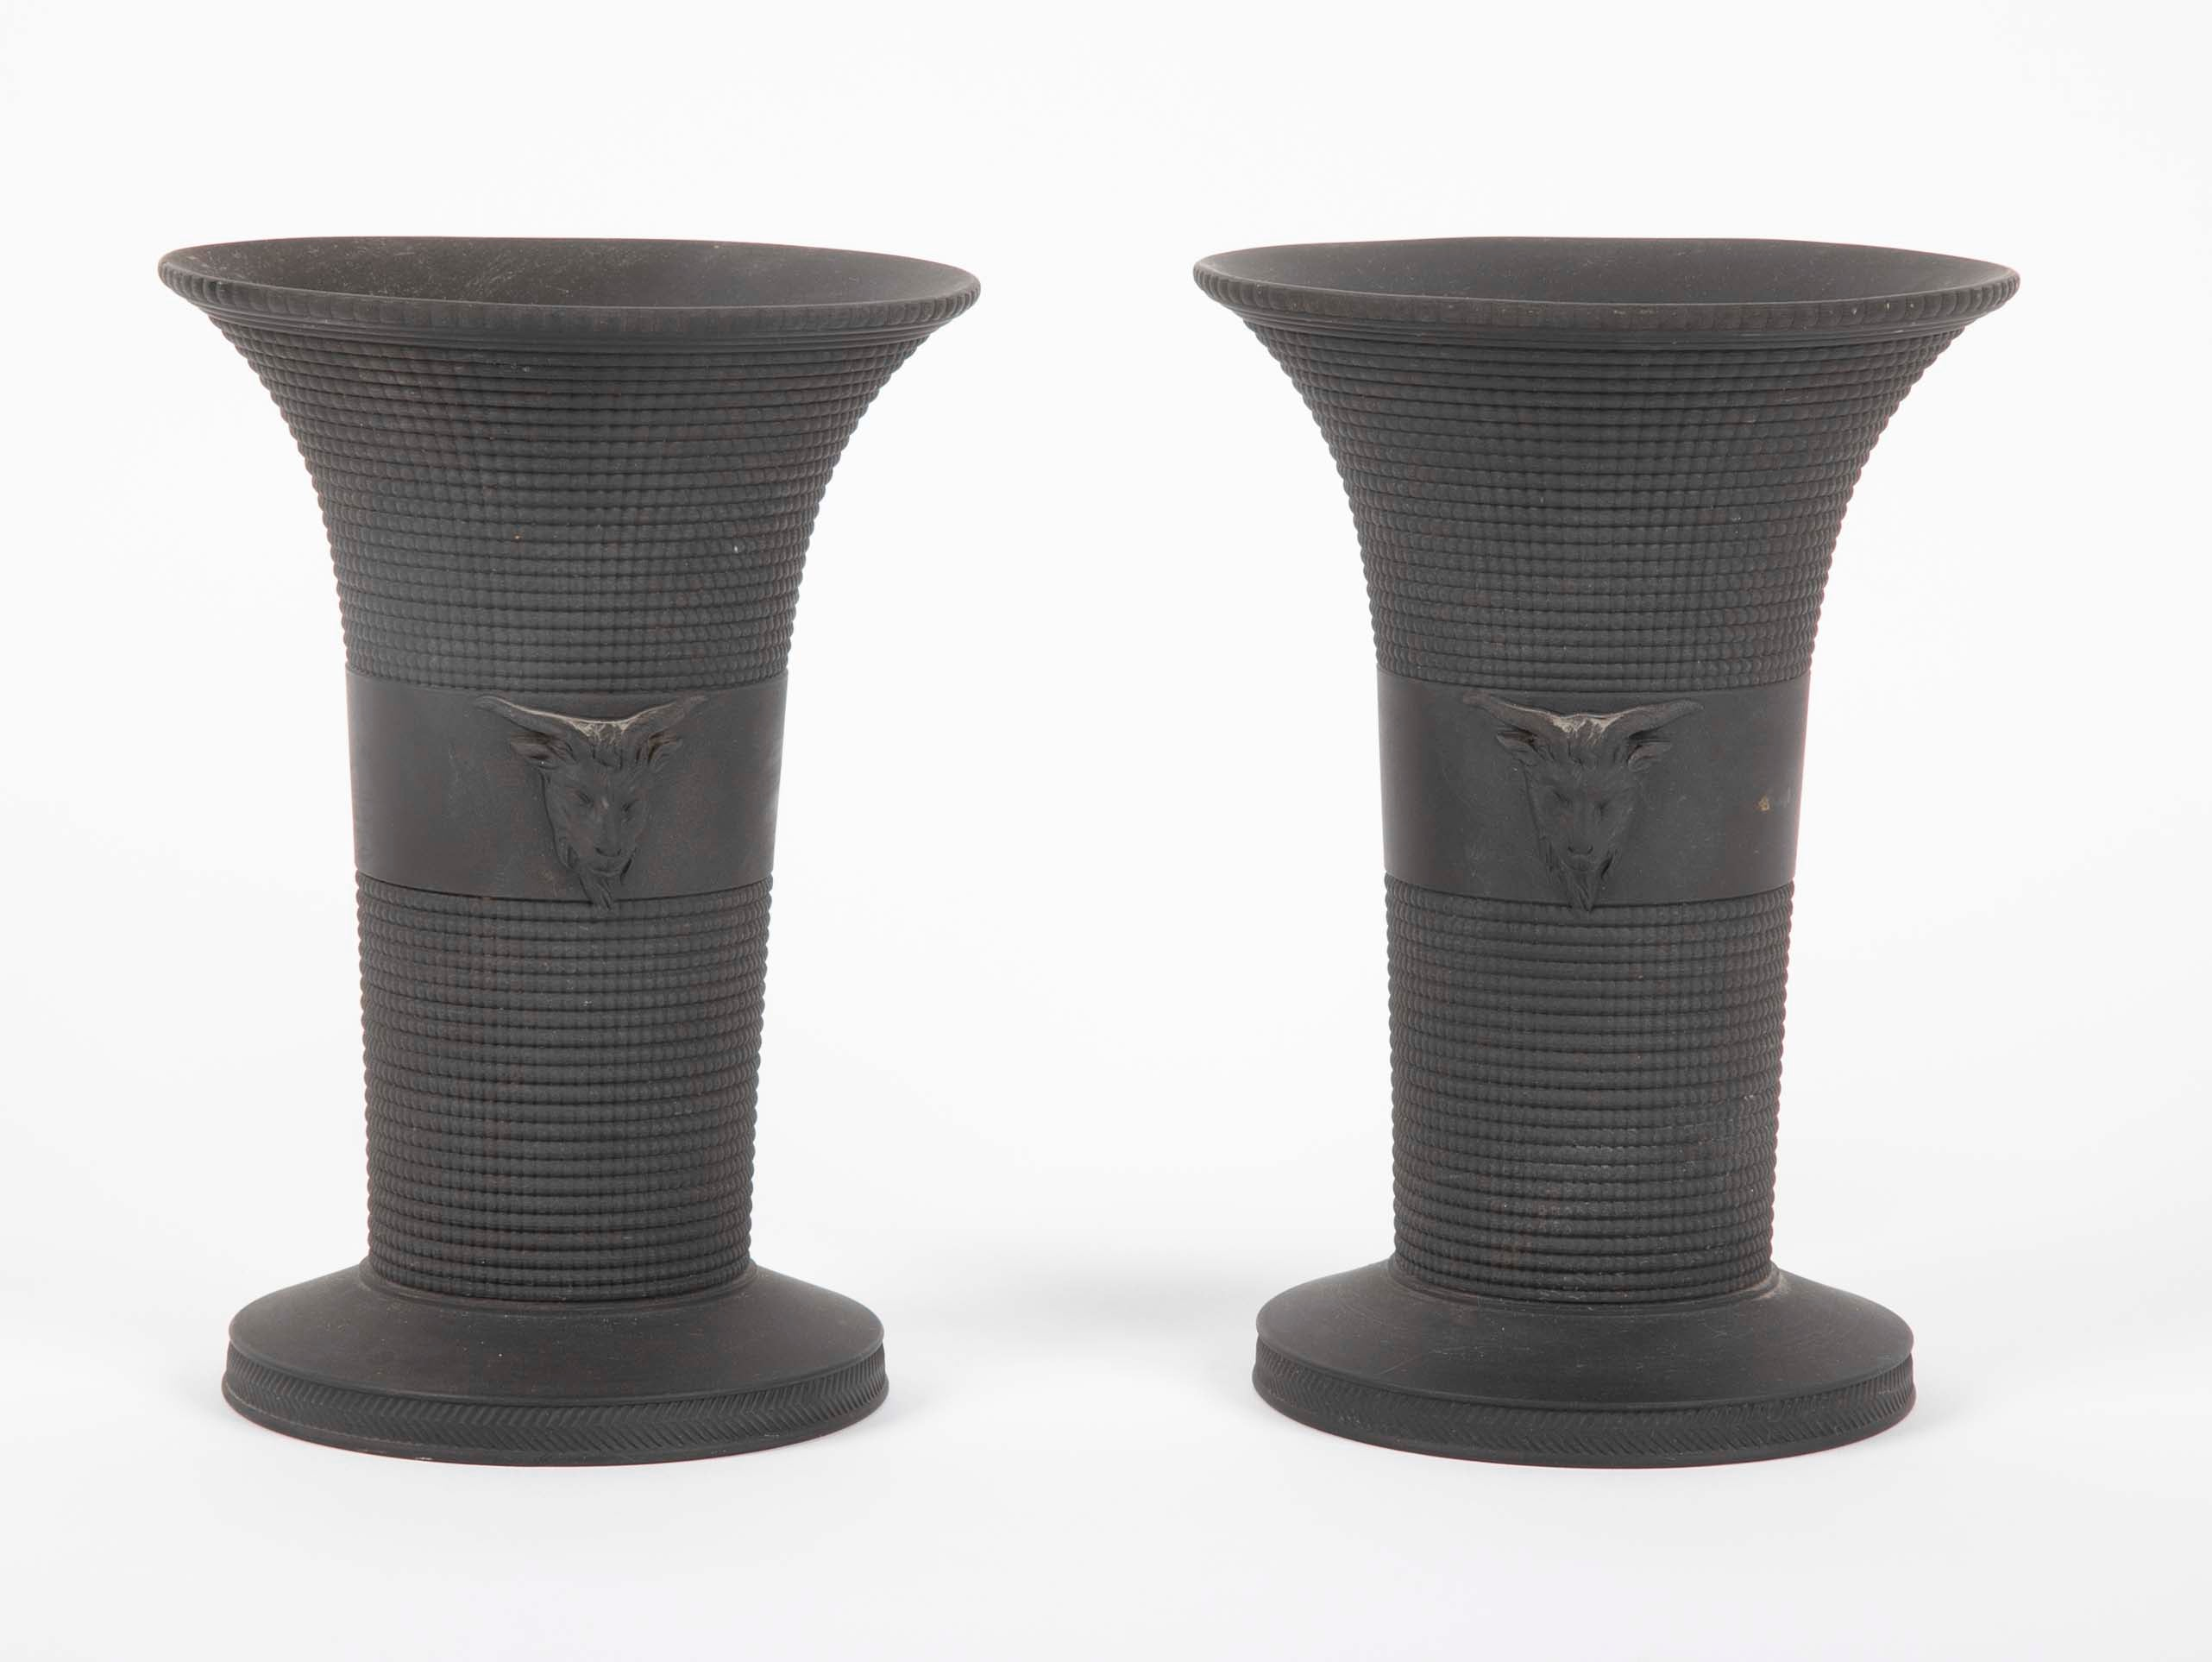 A Pair of Black Basalt Wedgwood Textured Vases with Rams Heads